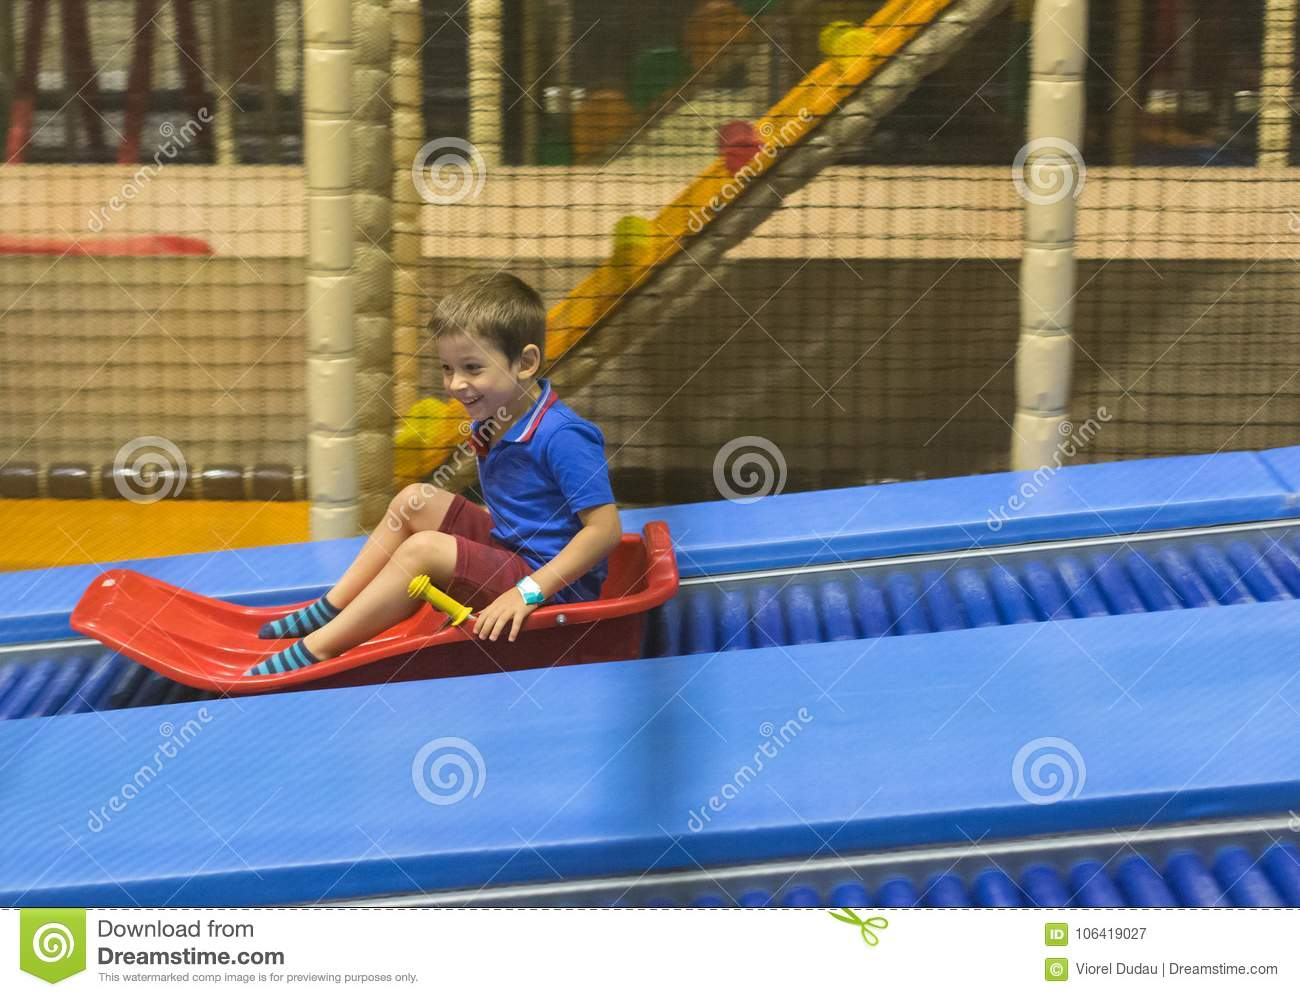 Child on slide ride in play area